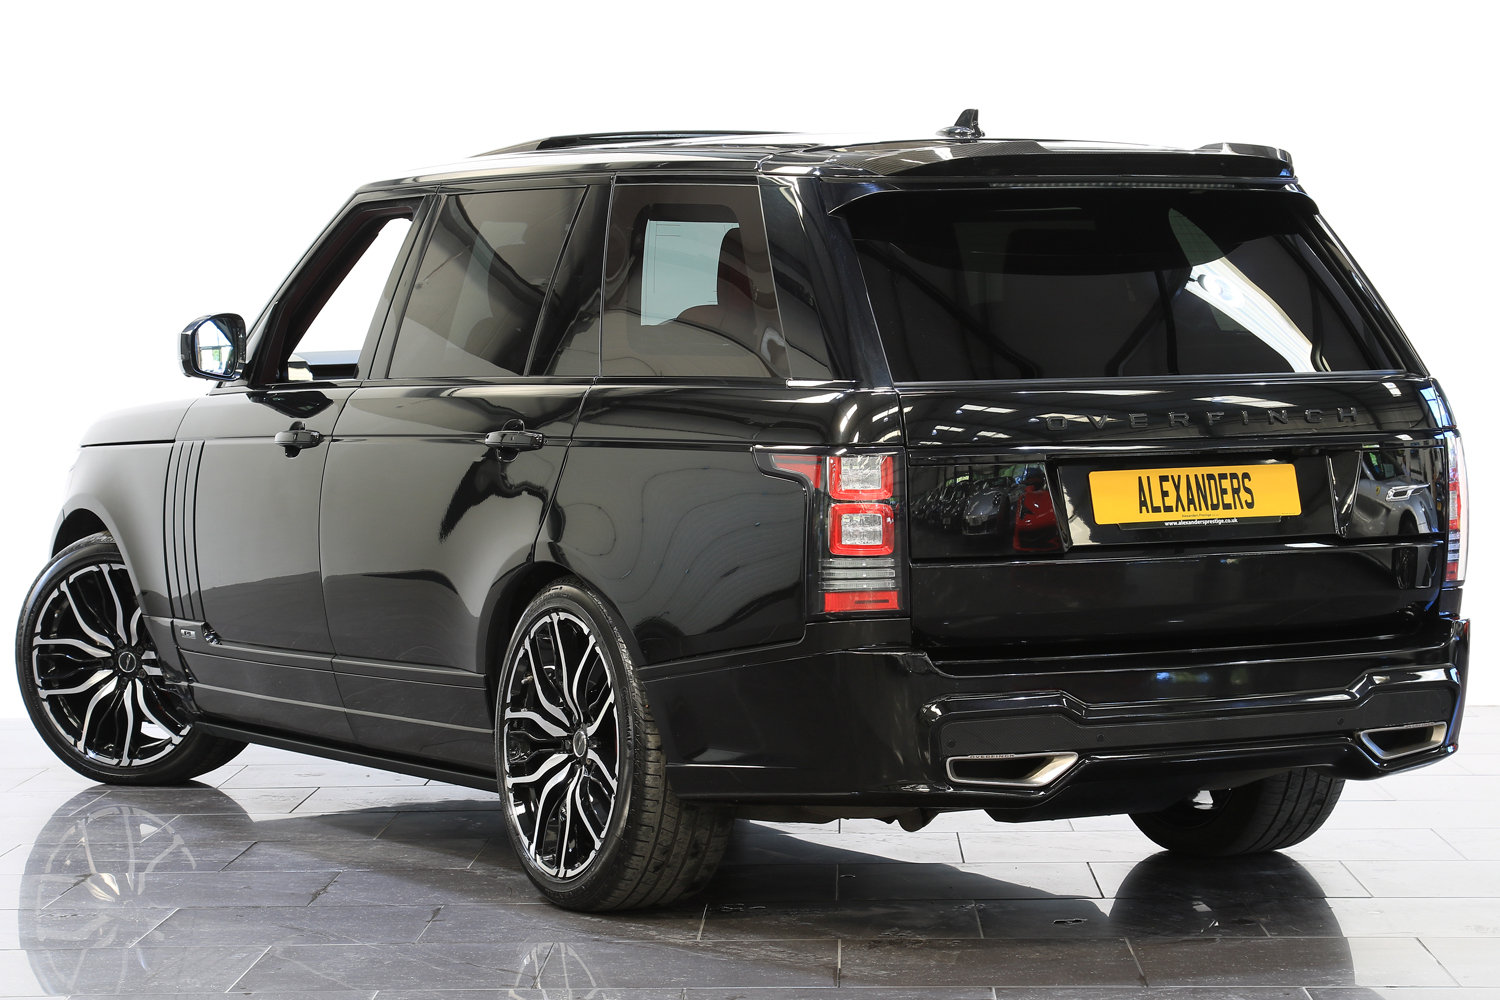 2016 16 RANGE ROVER 4.4 SDV8 AUTOBIOGRAPHY OVERFINCH LWB  For Sale (picture 3 of 6)